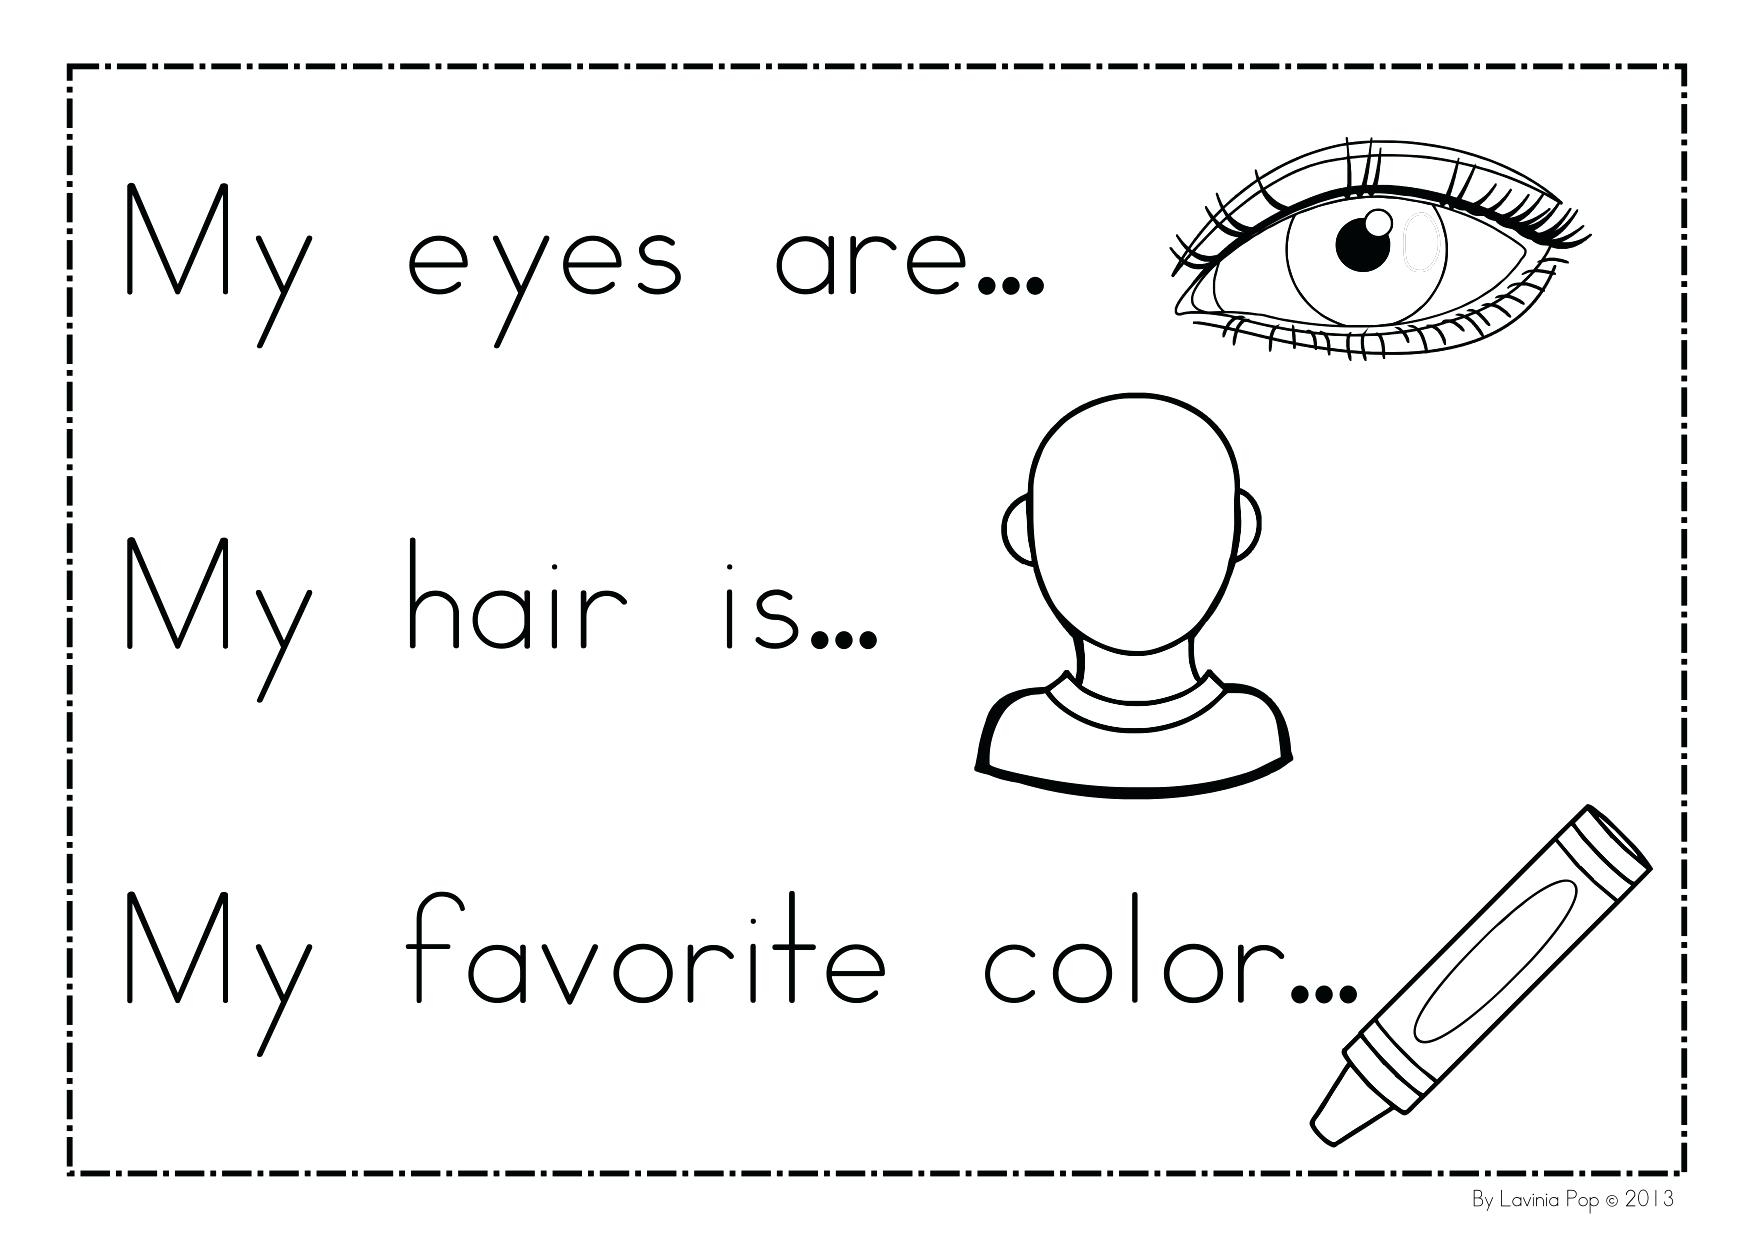 All About Me Coloring Pages All About Me Coloring Pages Flowers Free Printable Theorangechefco